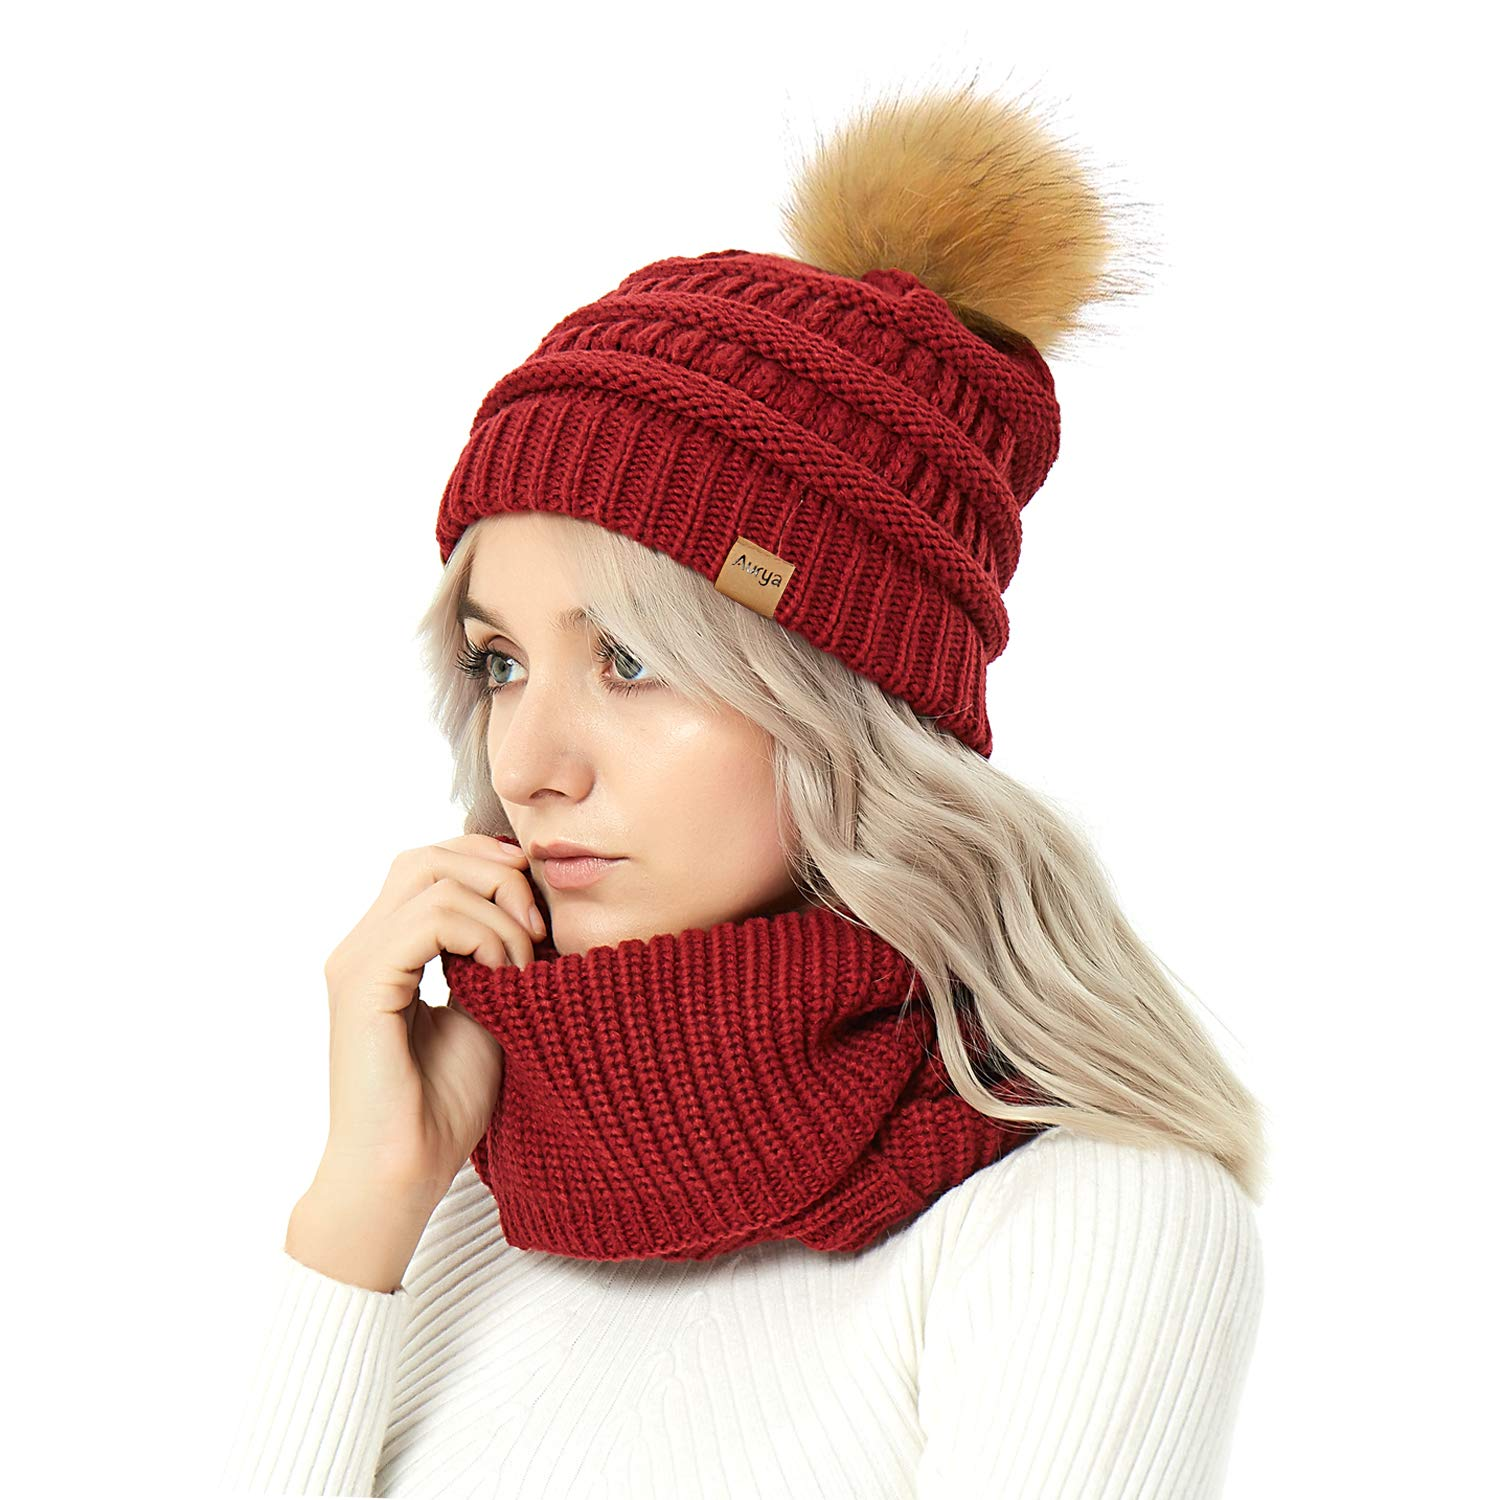 0609fa647ff Womens Winter Warm Cable Knit Pom Pom Beanie Hat Cap and Infinity Scarf Set  by ...